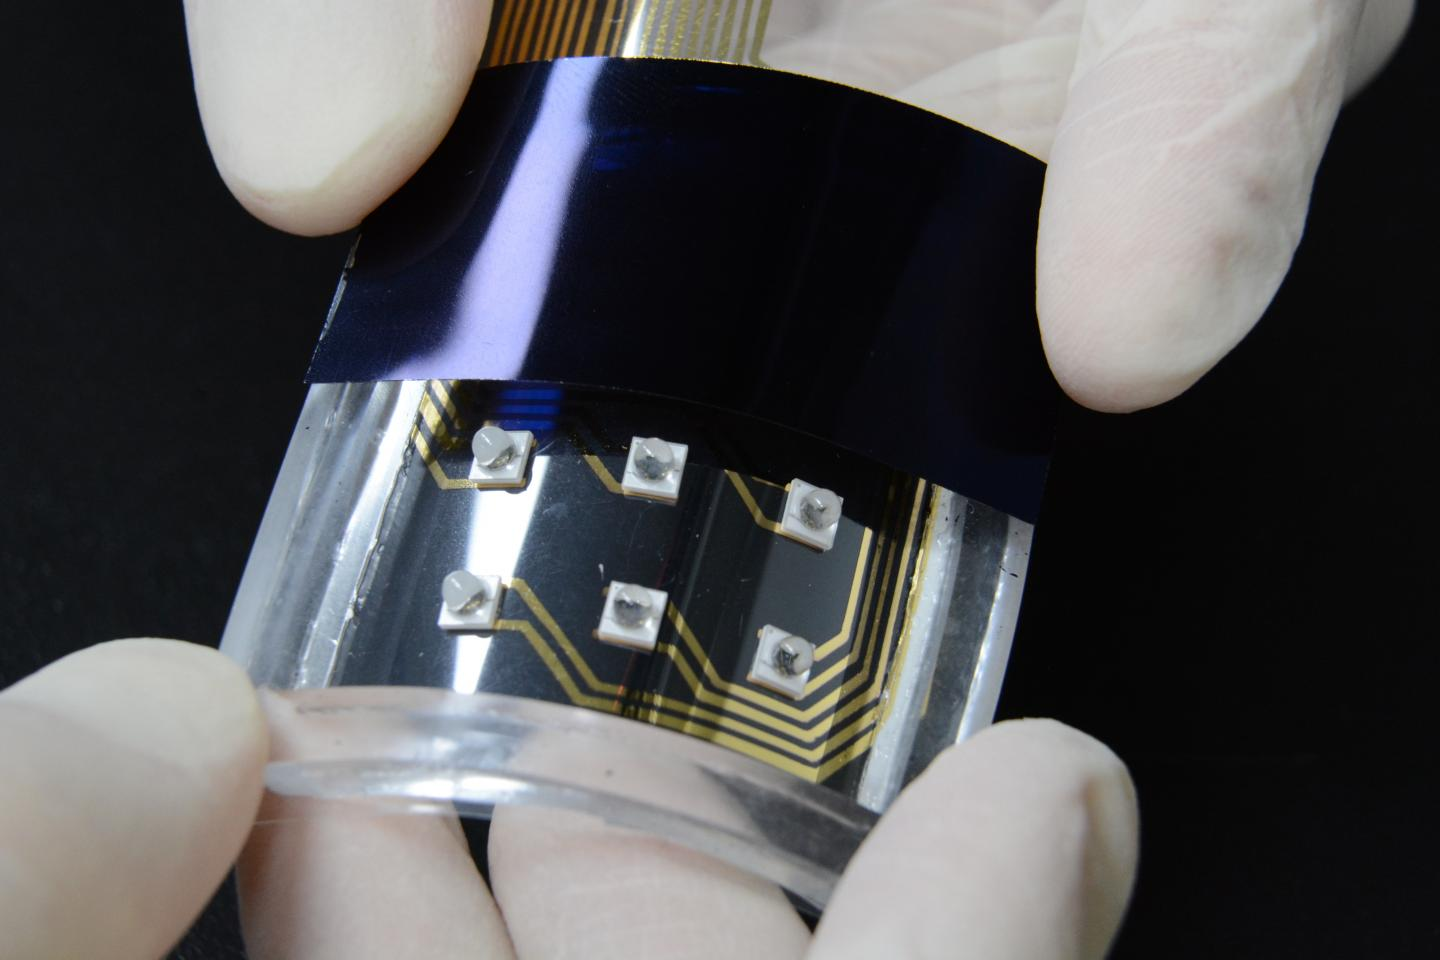 ETRI develops a haptic film activated by LEDs